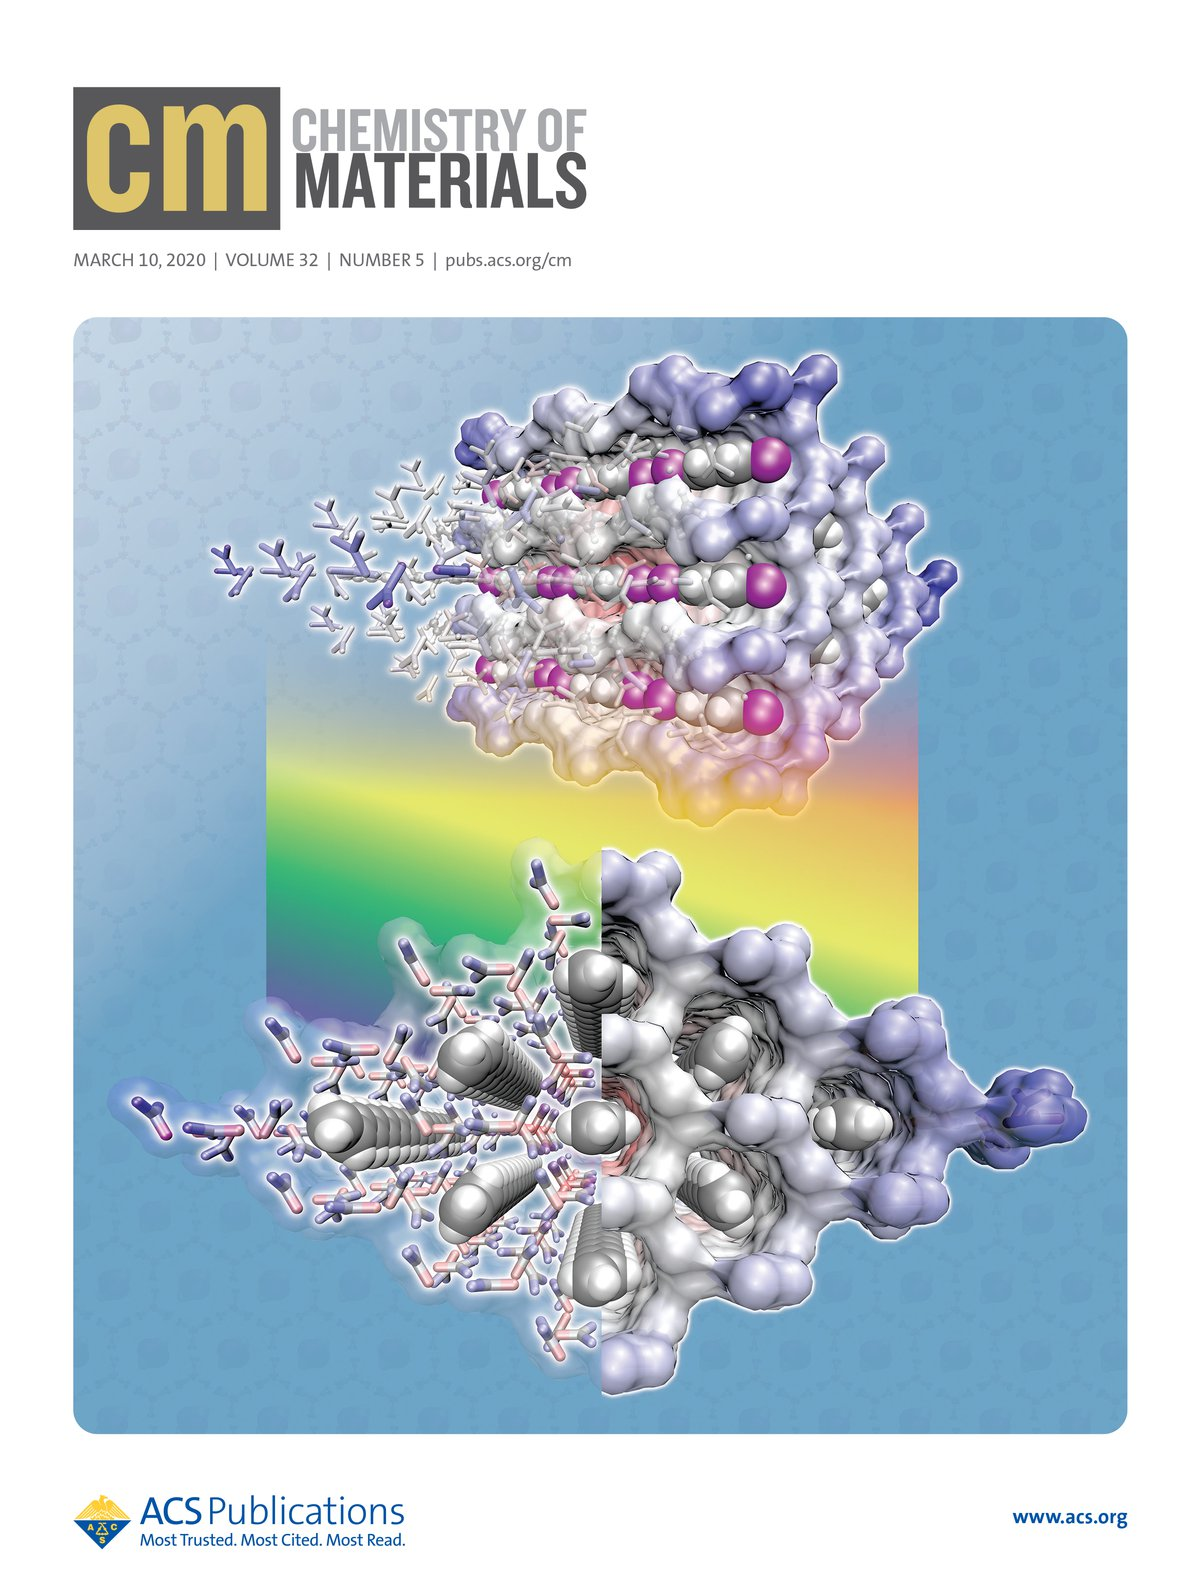 March 2020 issue of Chemistry of Materials.